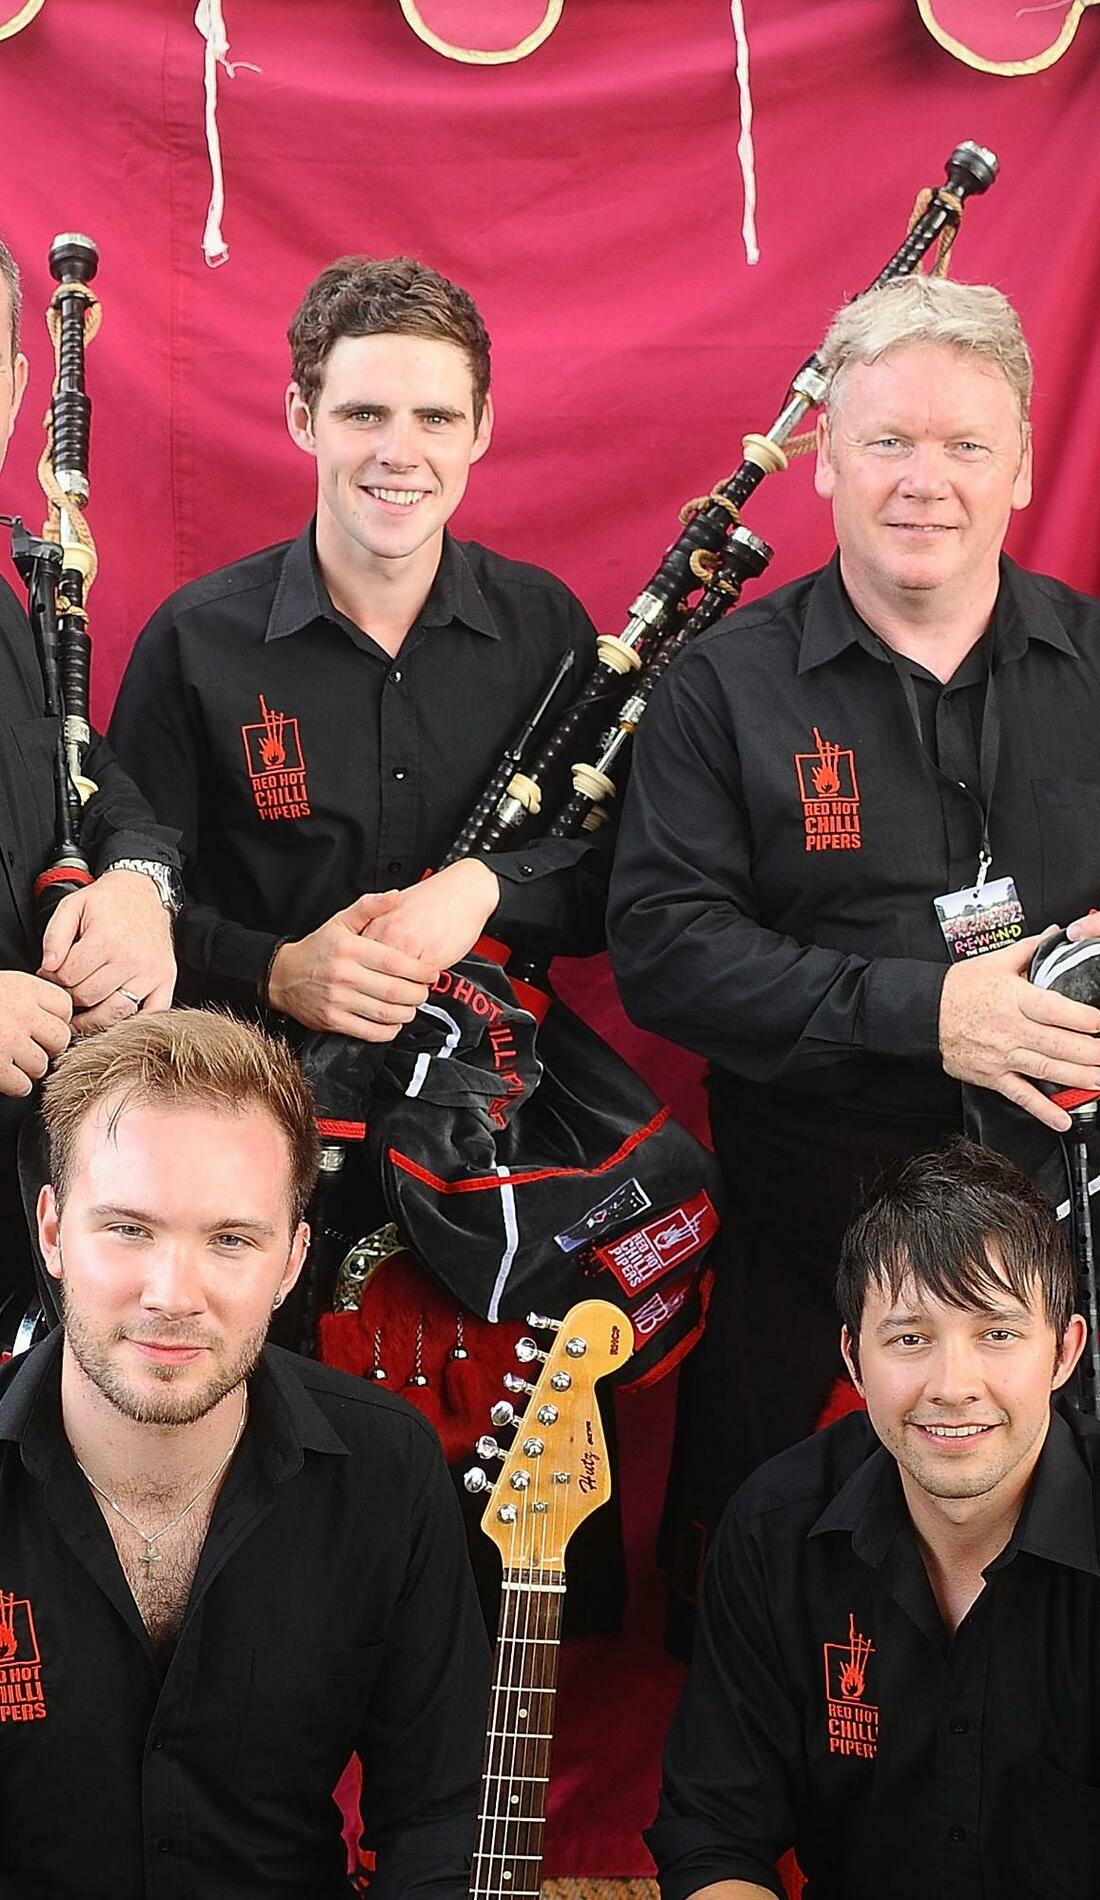 A Red Hot Chilli Pipers live event